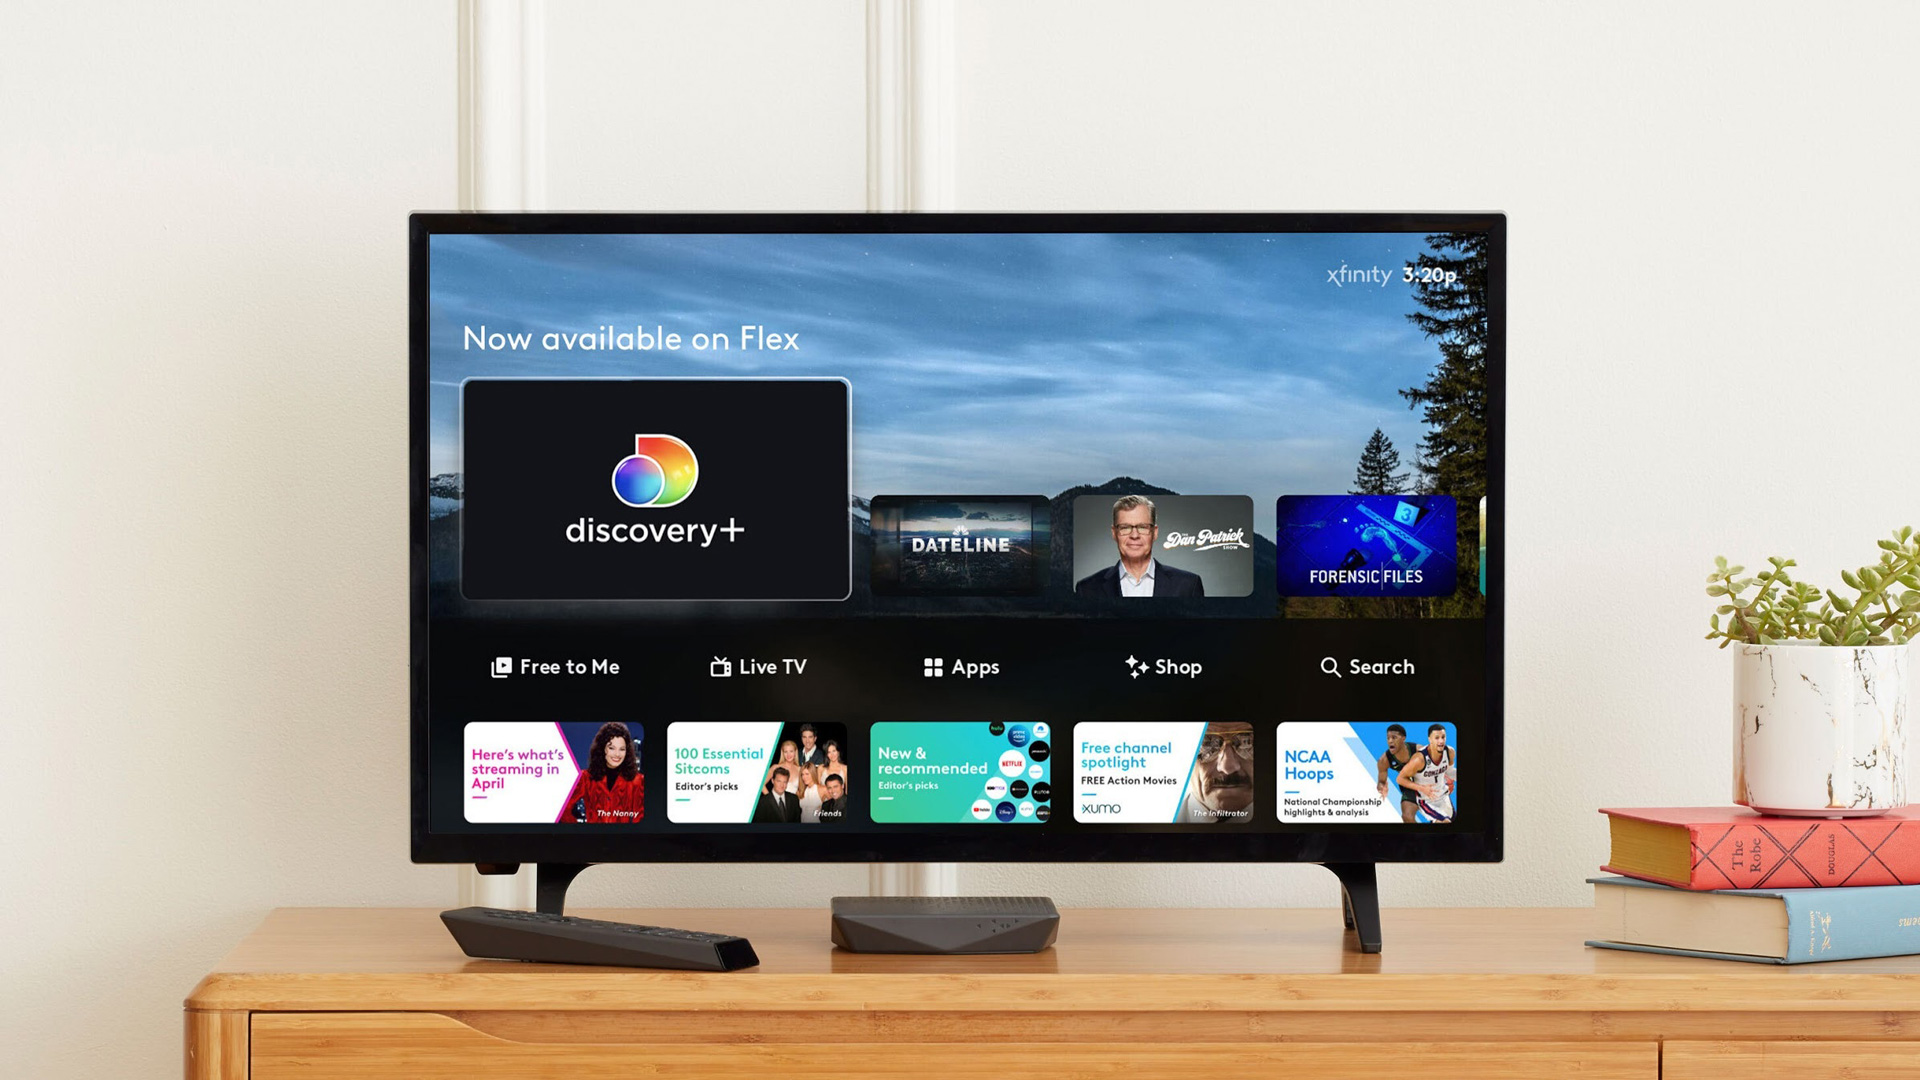 Discovery+ will arrive on Xfinity Flex devices today, and will come to X1 in the coming weeks.